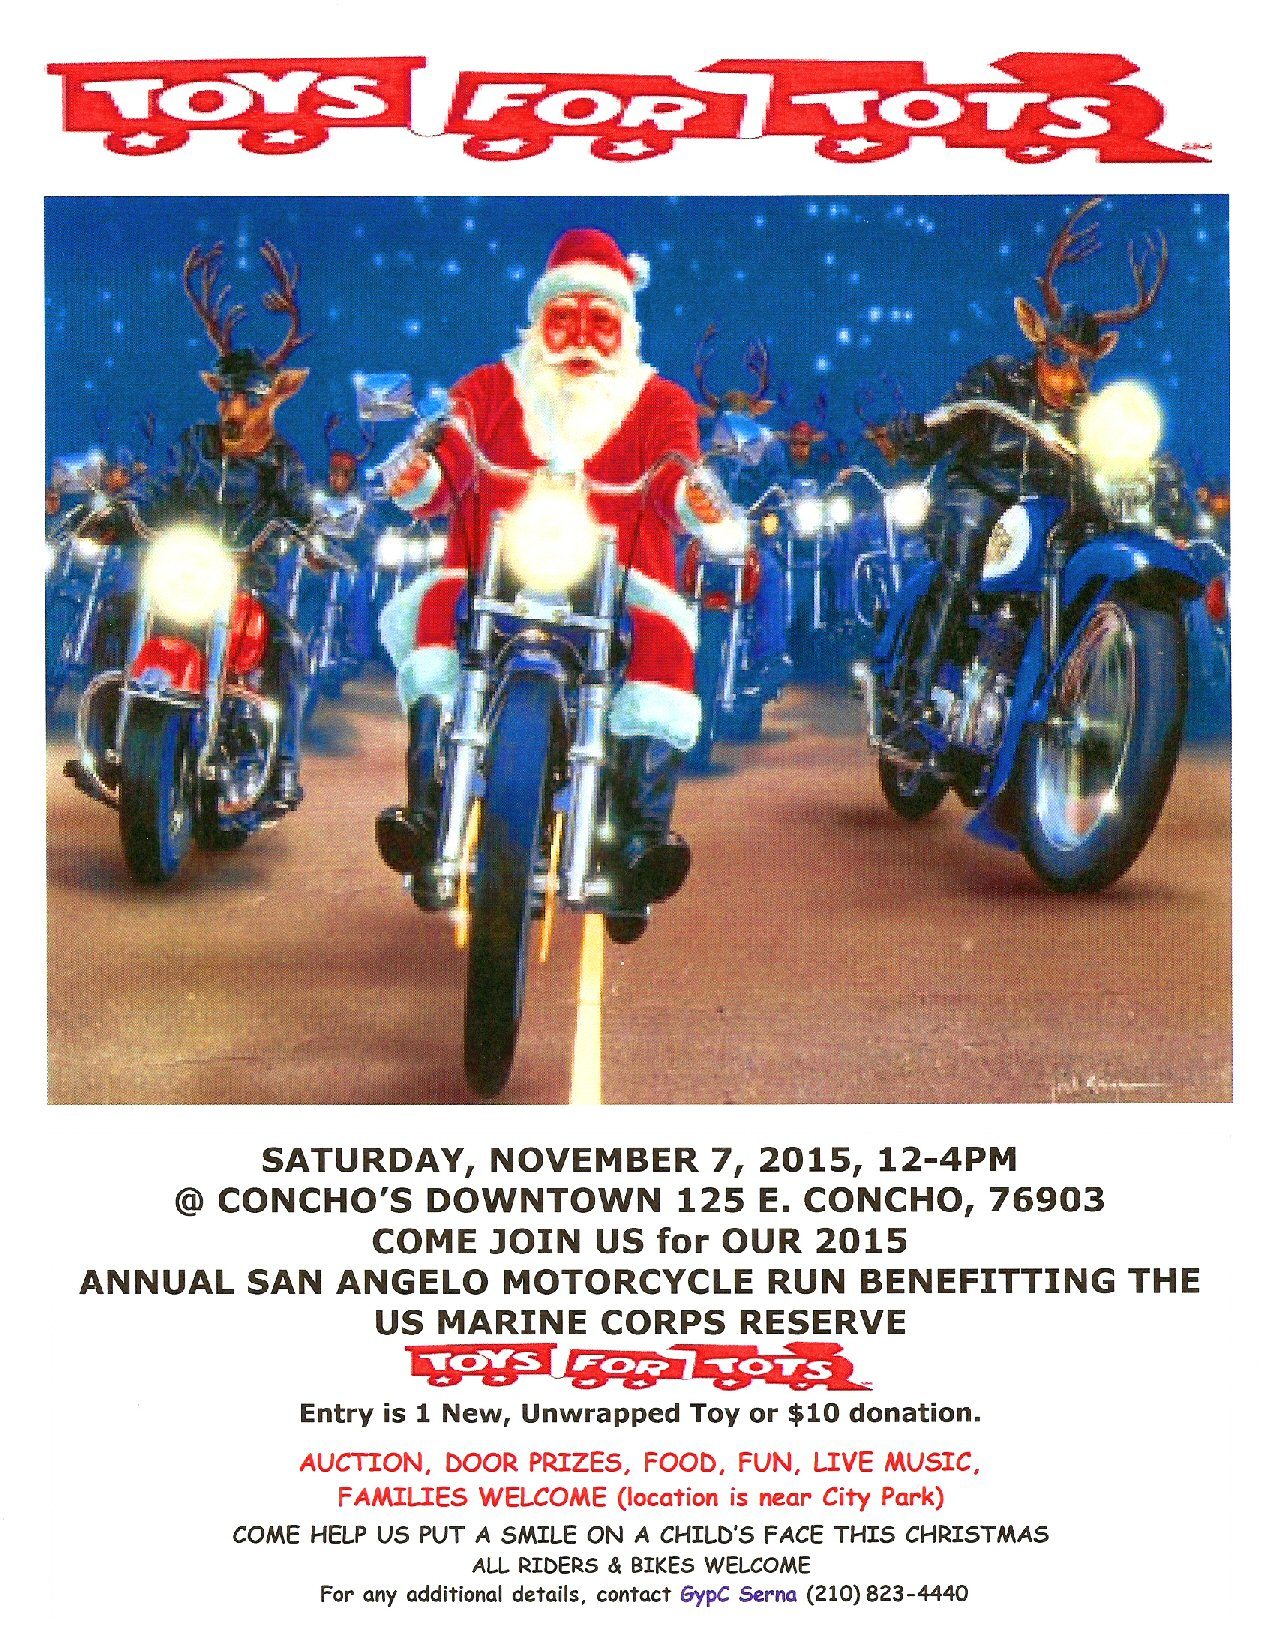 Toys For Tots Motorcycle Run : Toys for tots motorcycle run in san angelo tx